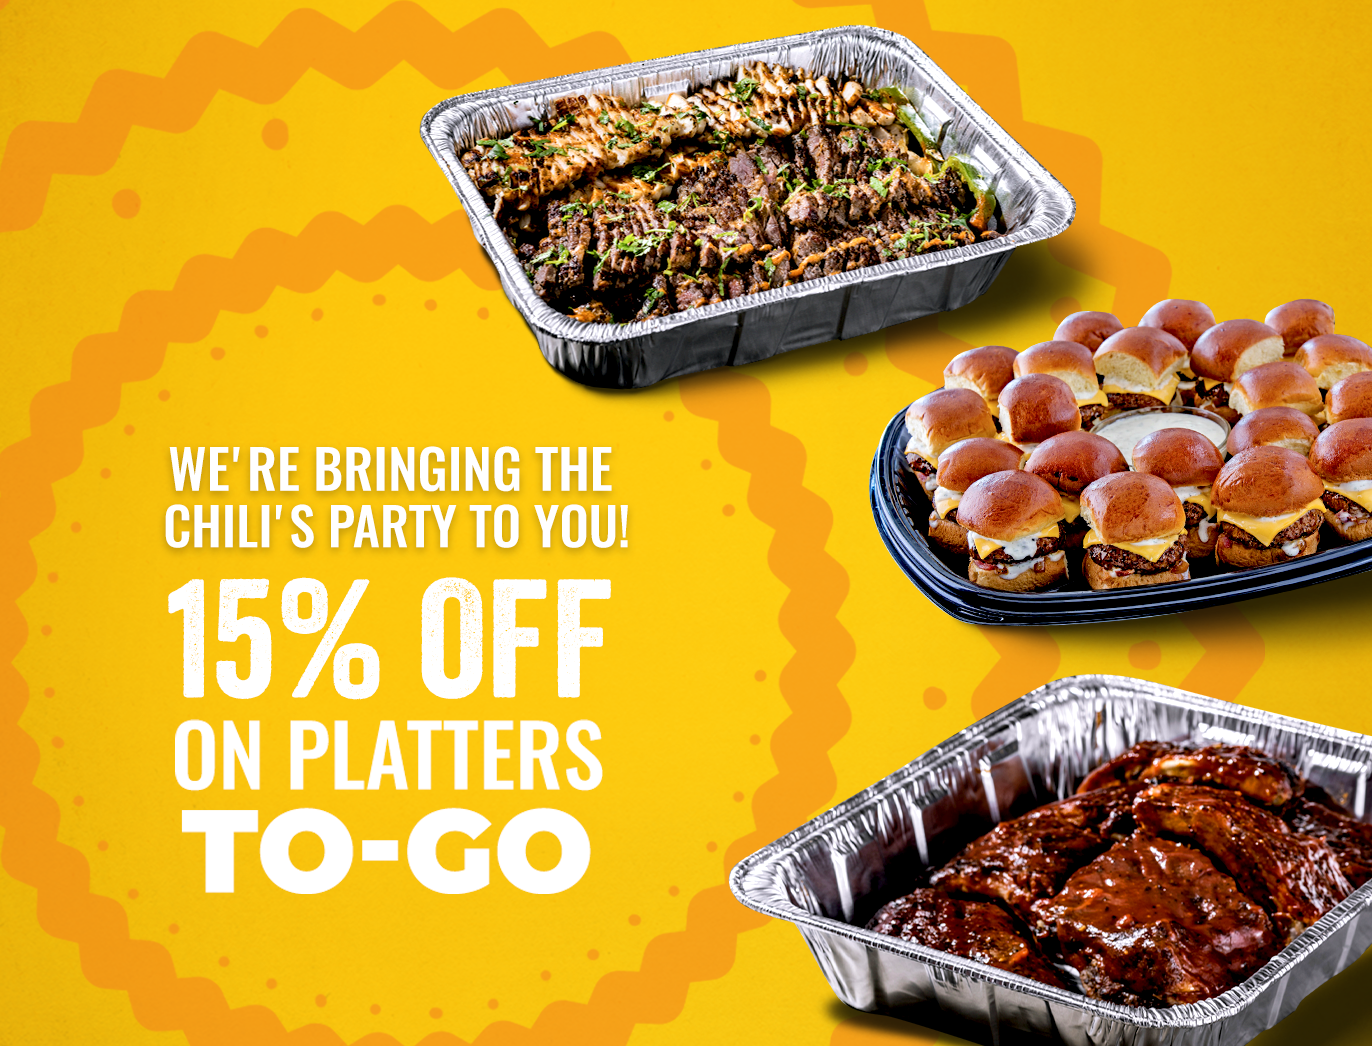 Chili's Platters To-Go 15off